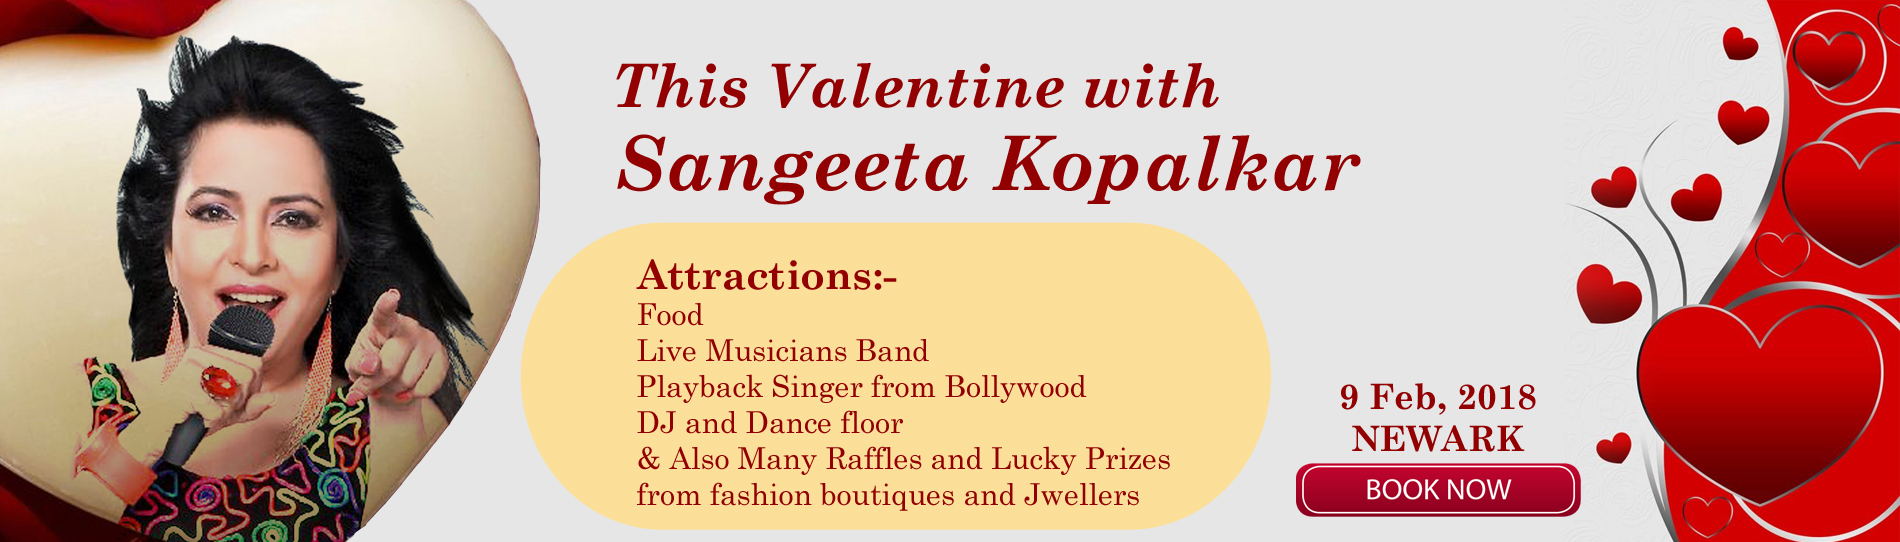 EventMozo Valentine Day with Sangeeta Kopalkar